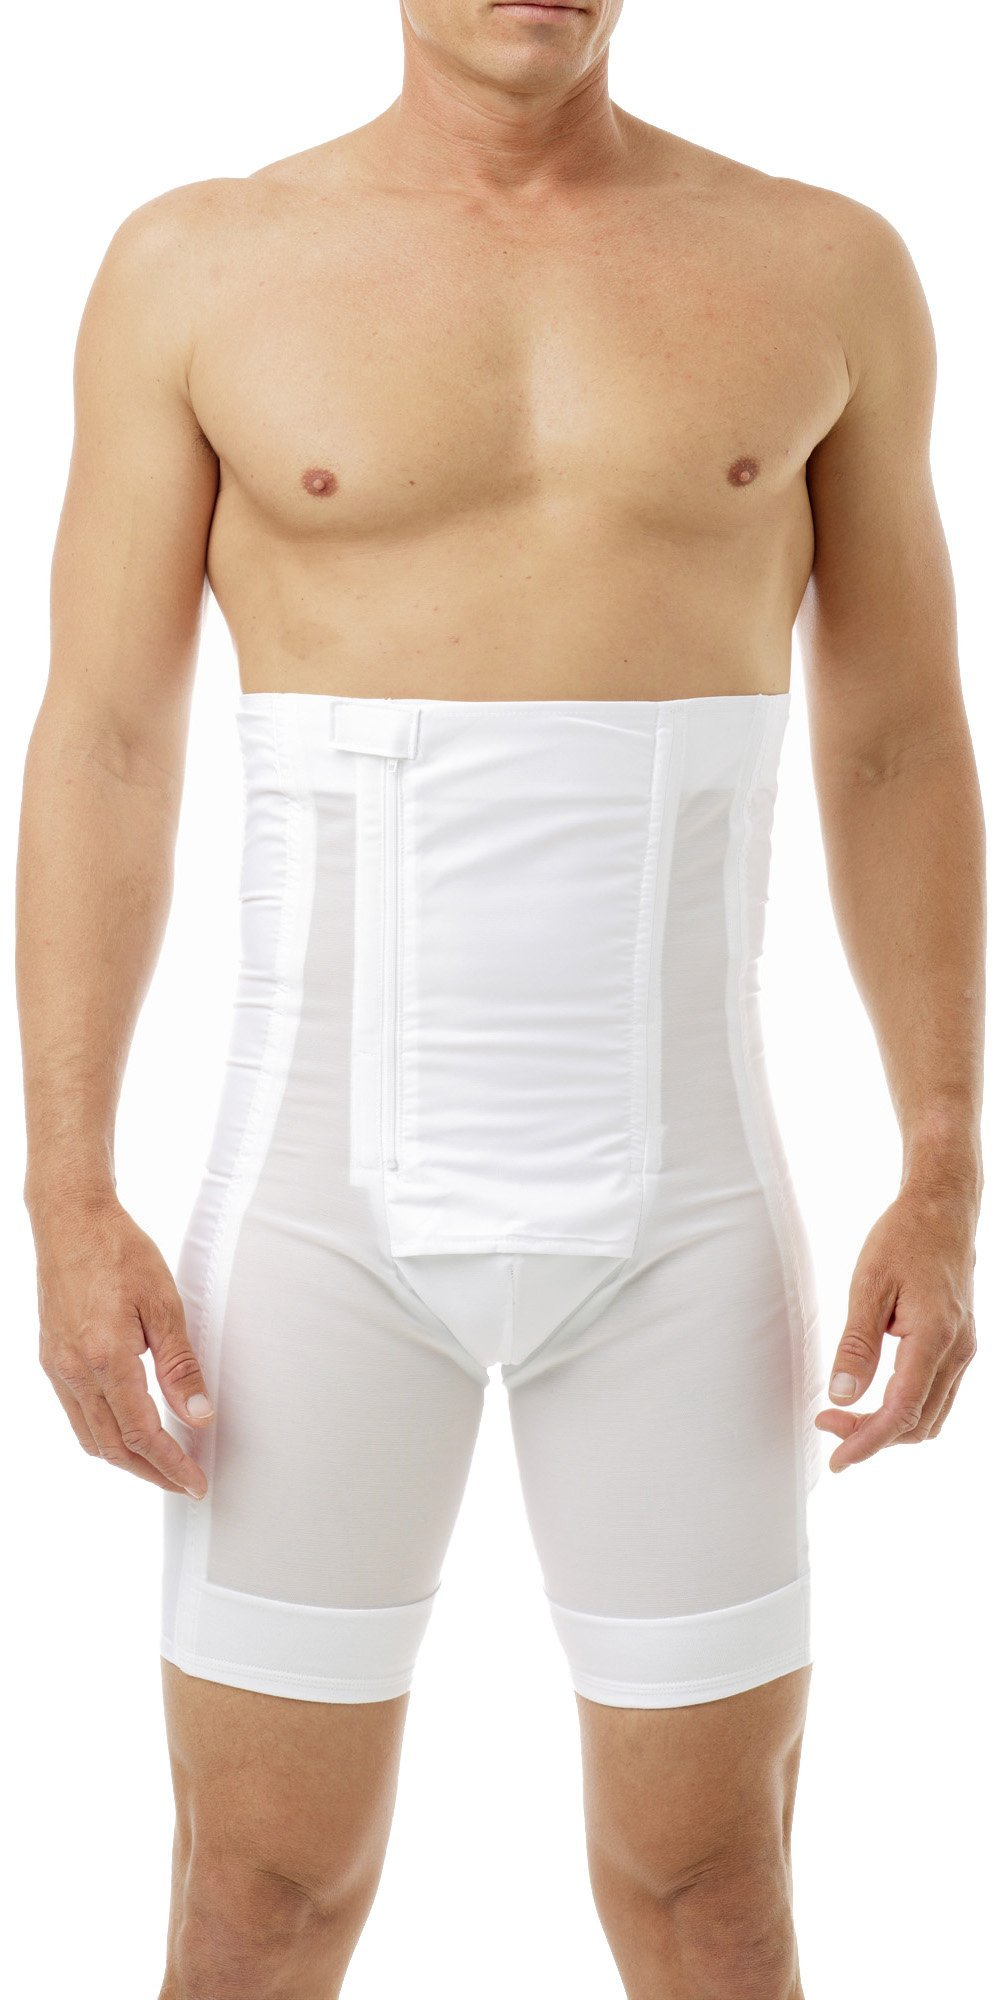 Underworks Men's Power Shaper Long Leg Brief Girdle, Waistline - Large 37-40, White